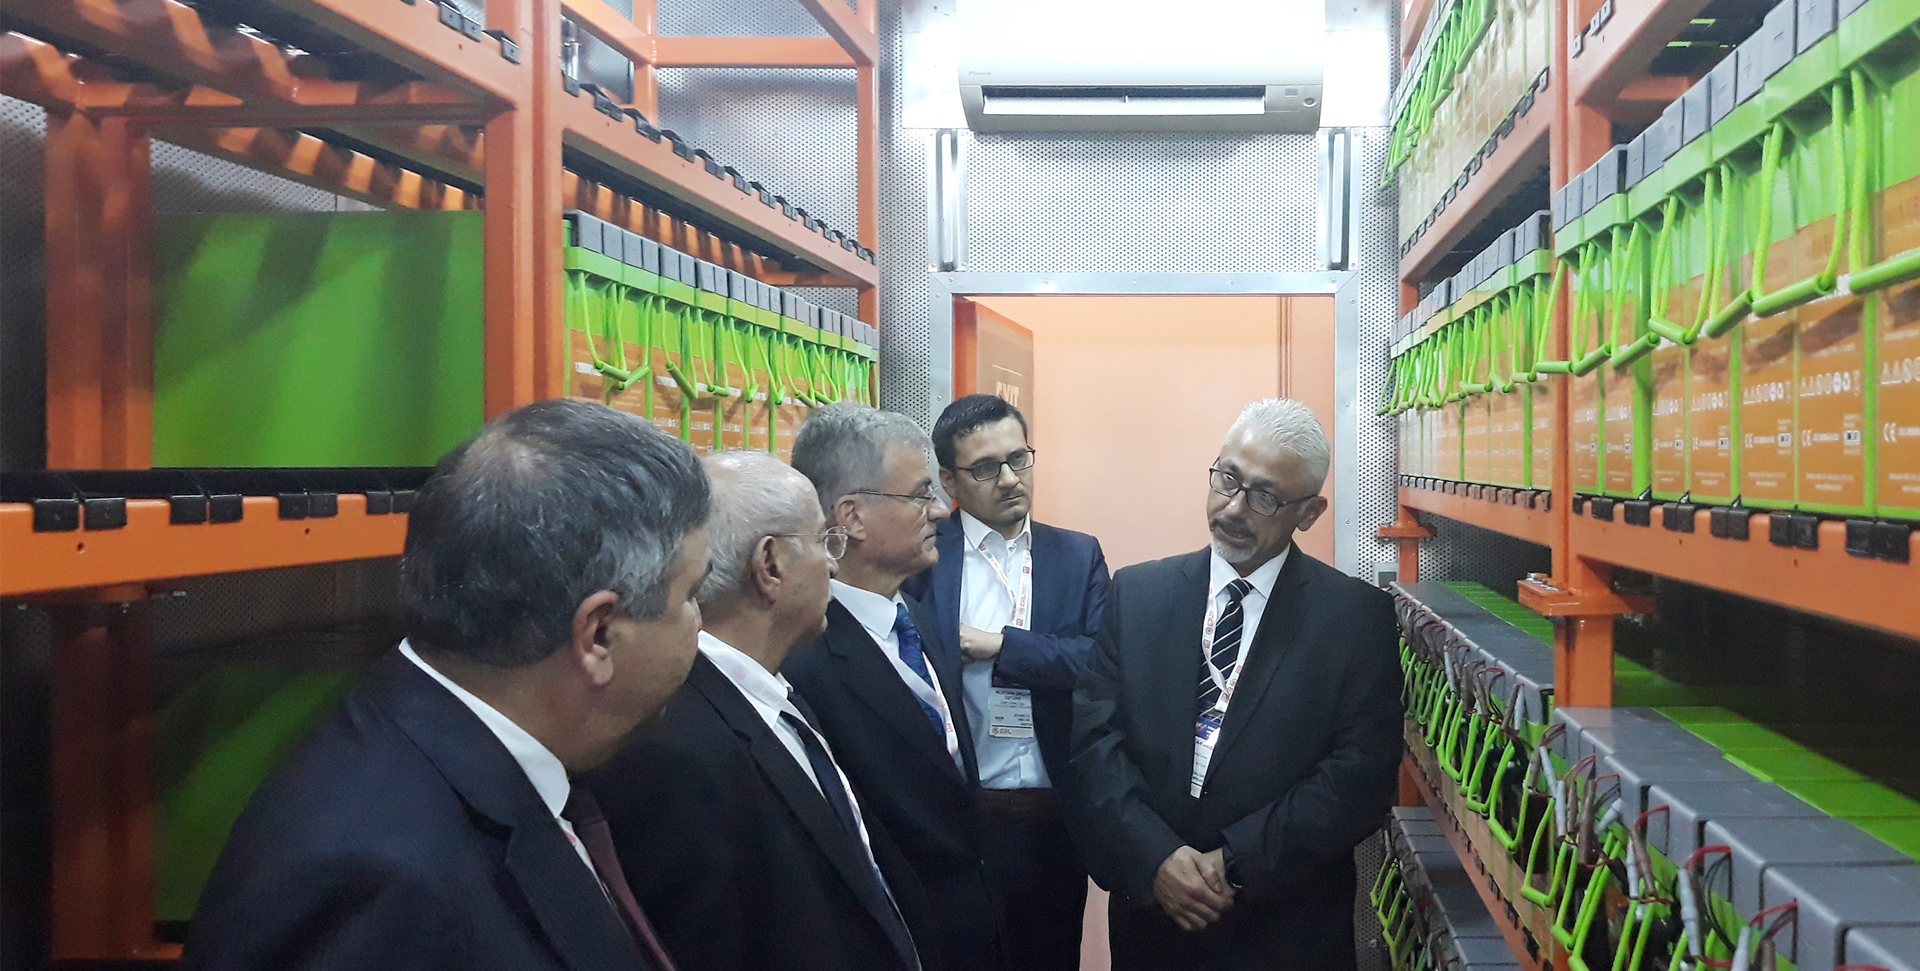 MAKELSAN INTRODUCED TURKEY'S FIRST AND ONLY ENERGY STORAGE SYSTEM